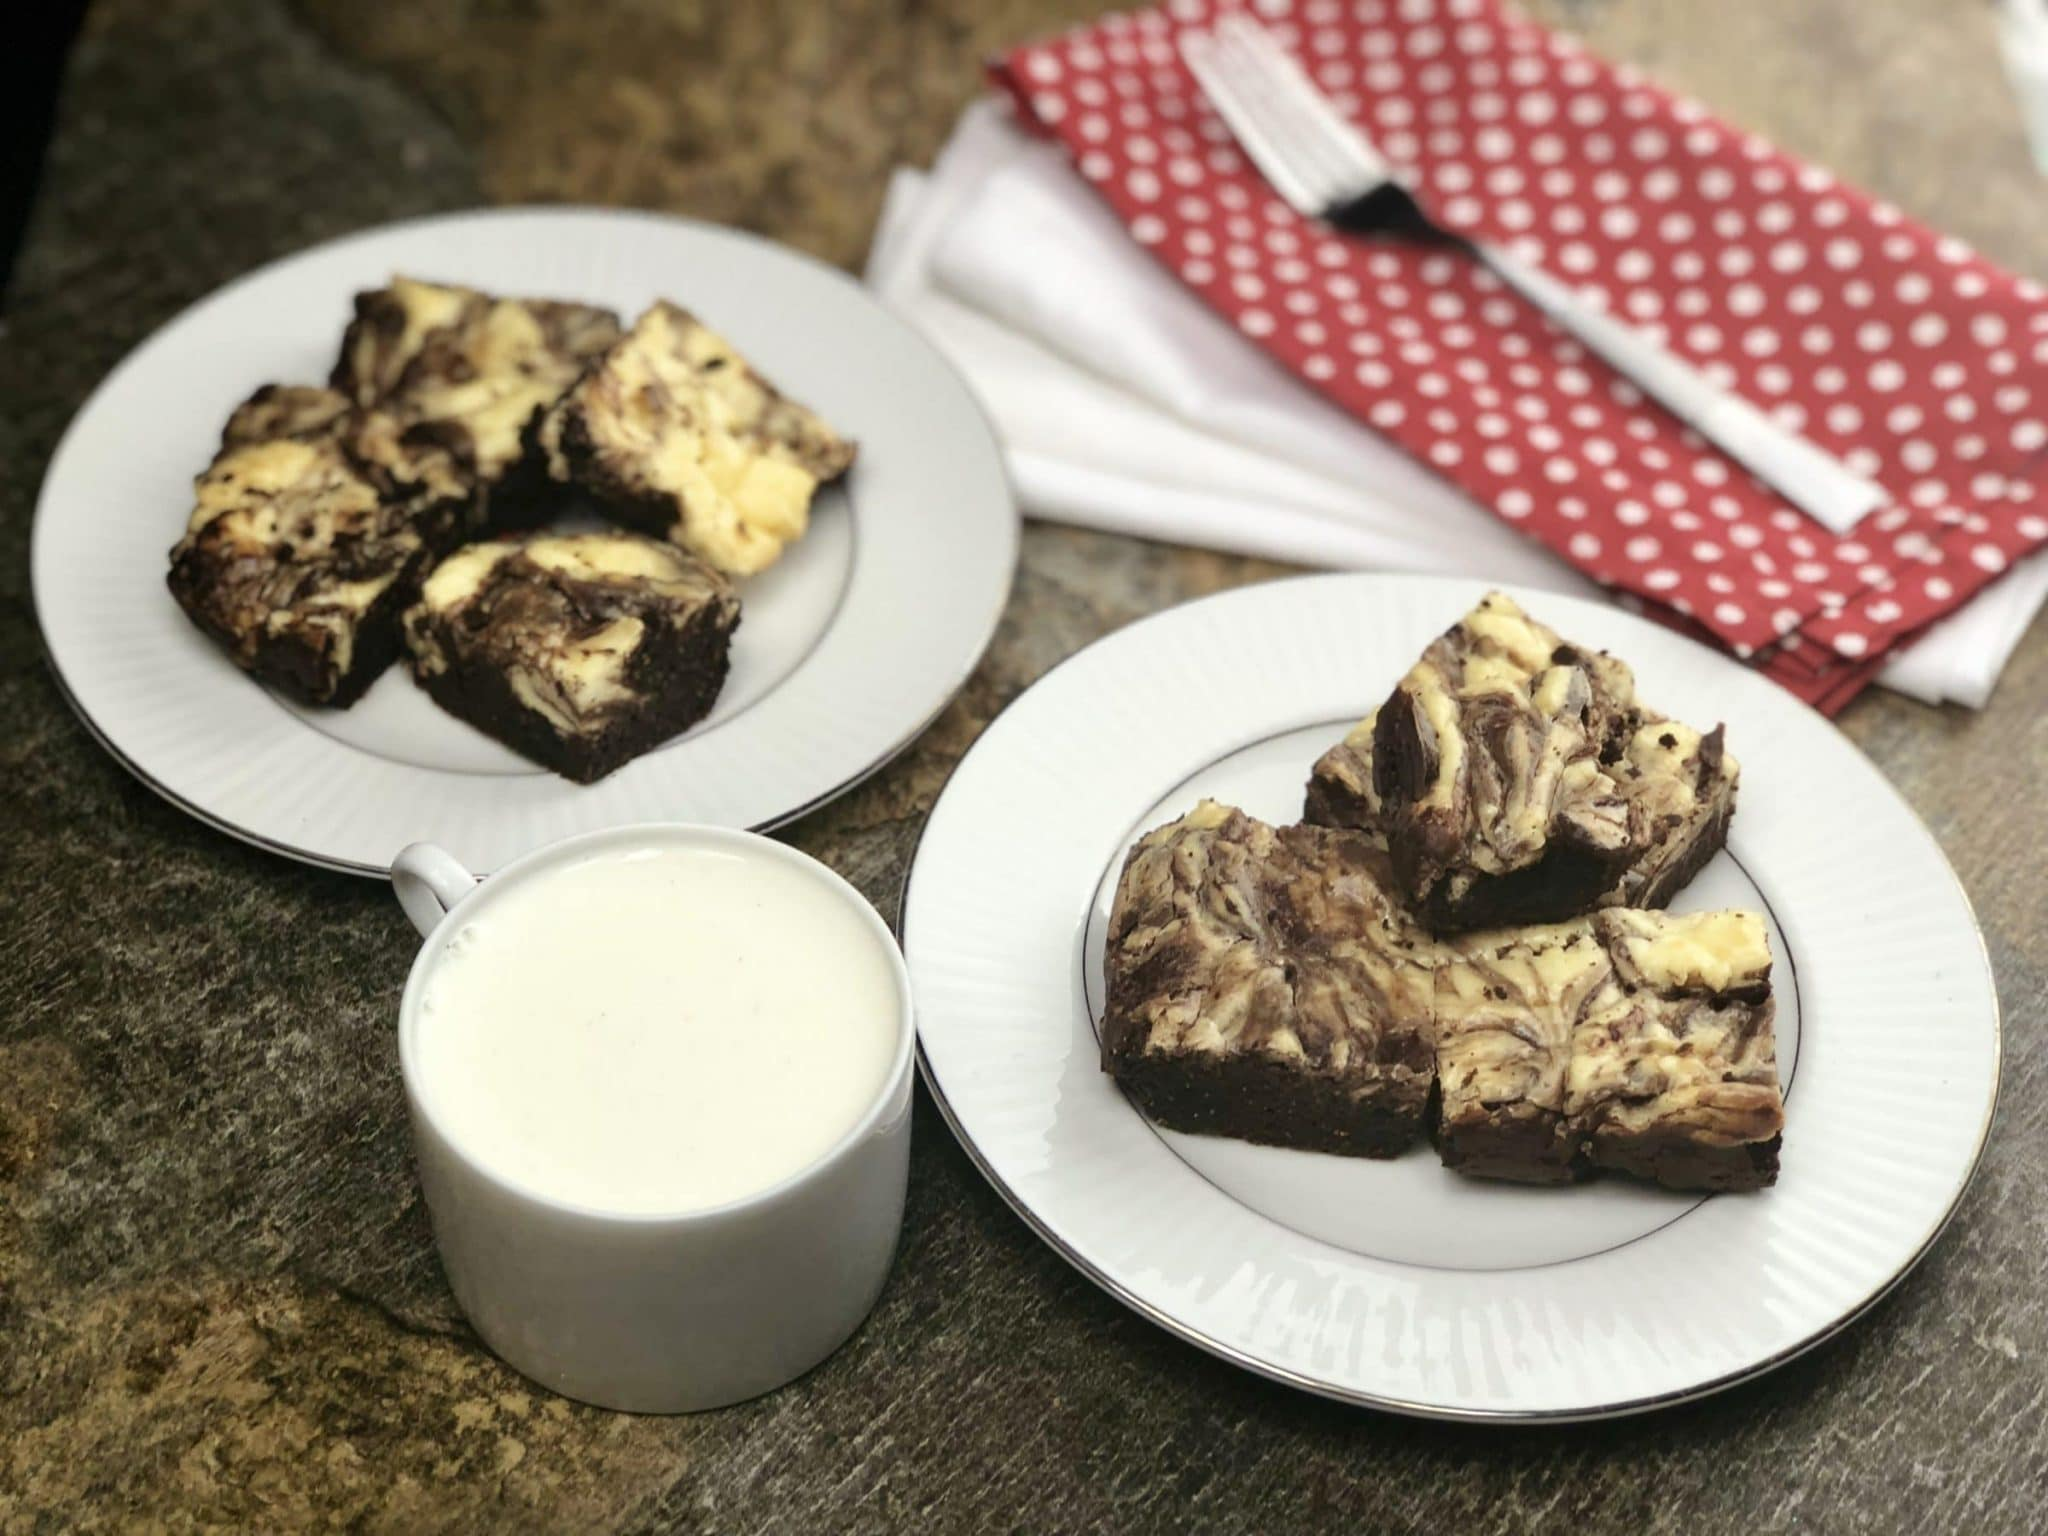 Two things that are meant to go together are cheesecake and brownies, and these keto cream cheese brownies are where it is at.#ketocreaamcheesebrownies #ketocheesecakebrownies